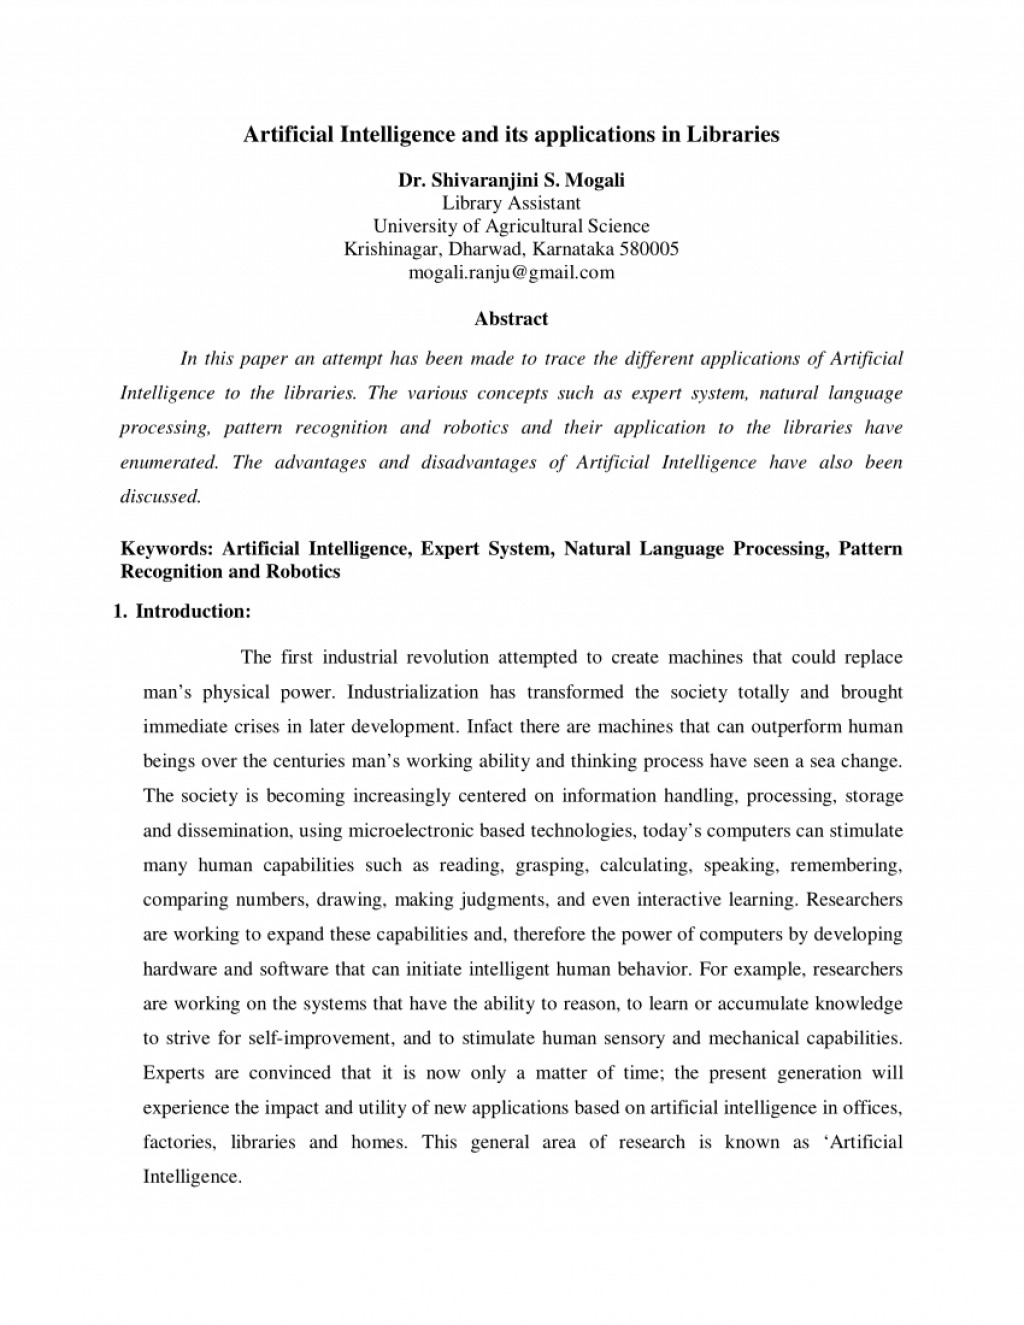 003 Largepreview Research Paper Artificial Intelligence Papers Wonderful Download Large